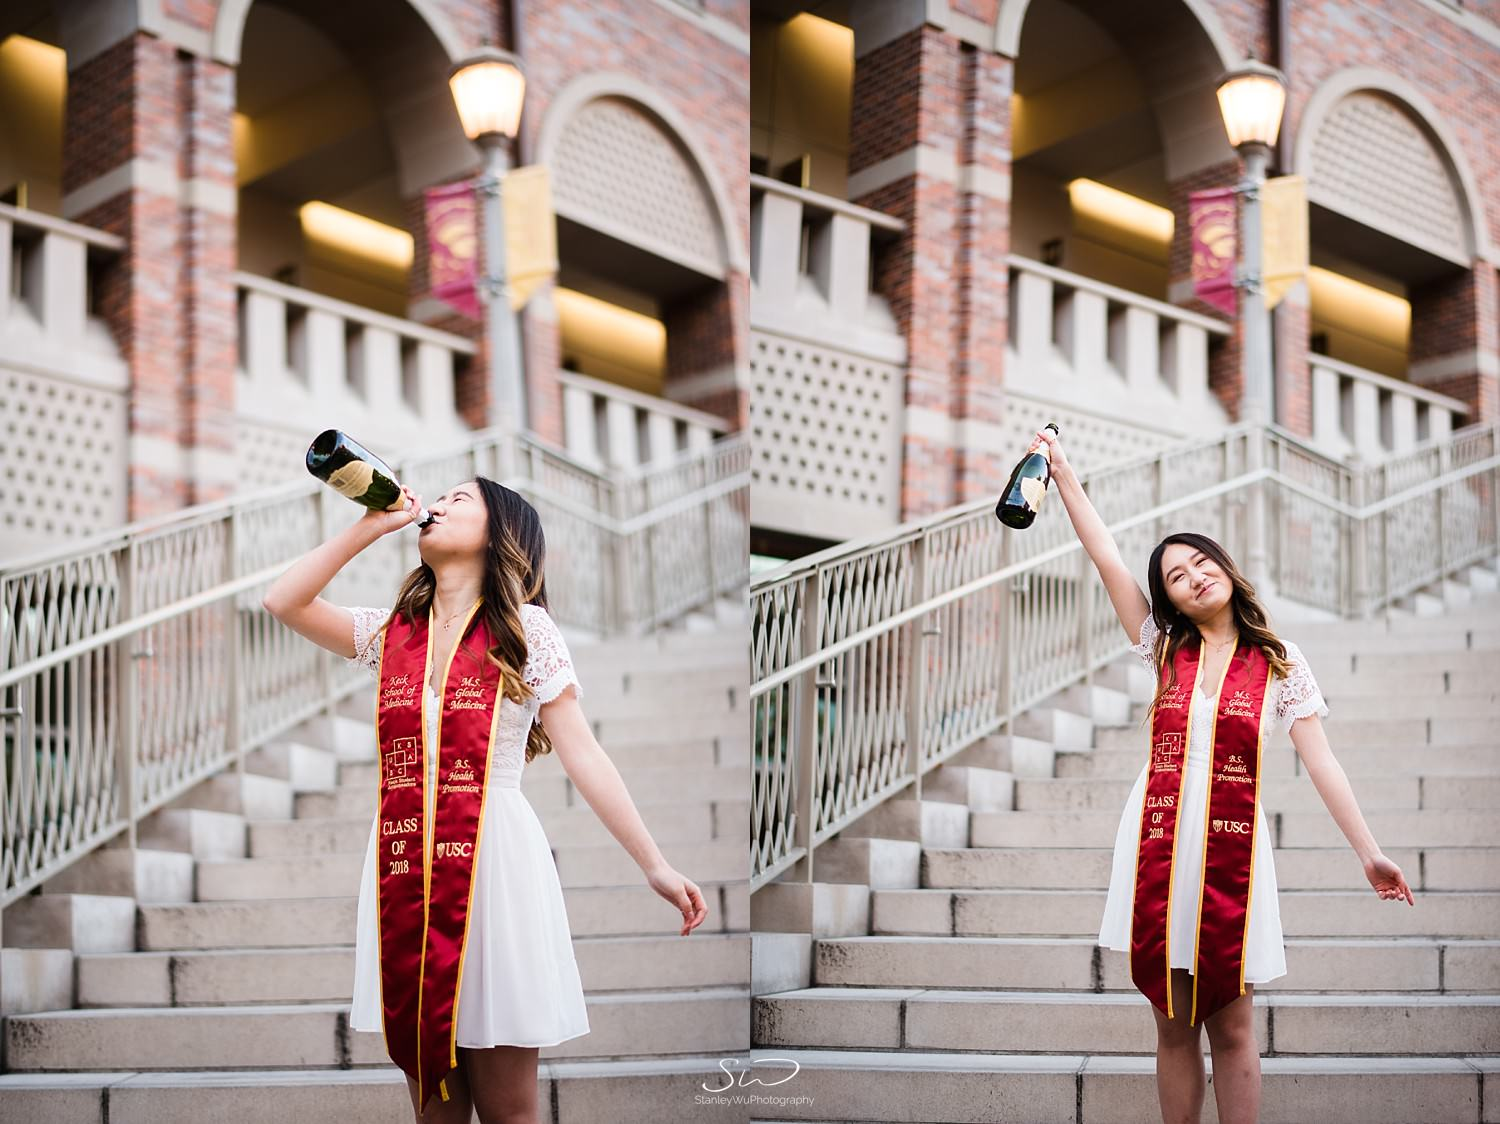 Celebrating with champagne at Steps of Troy at USC | Los Angeles Orange County Senior Portrait & Wedding Photographer